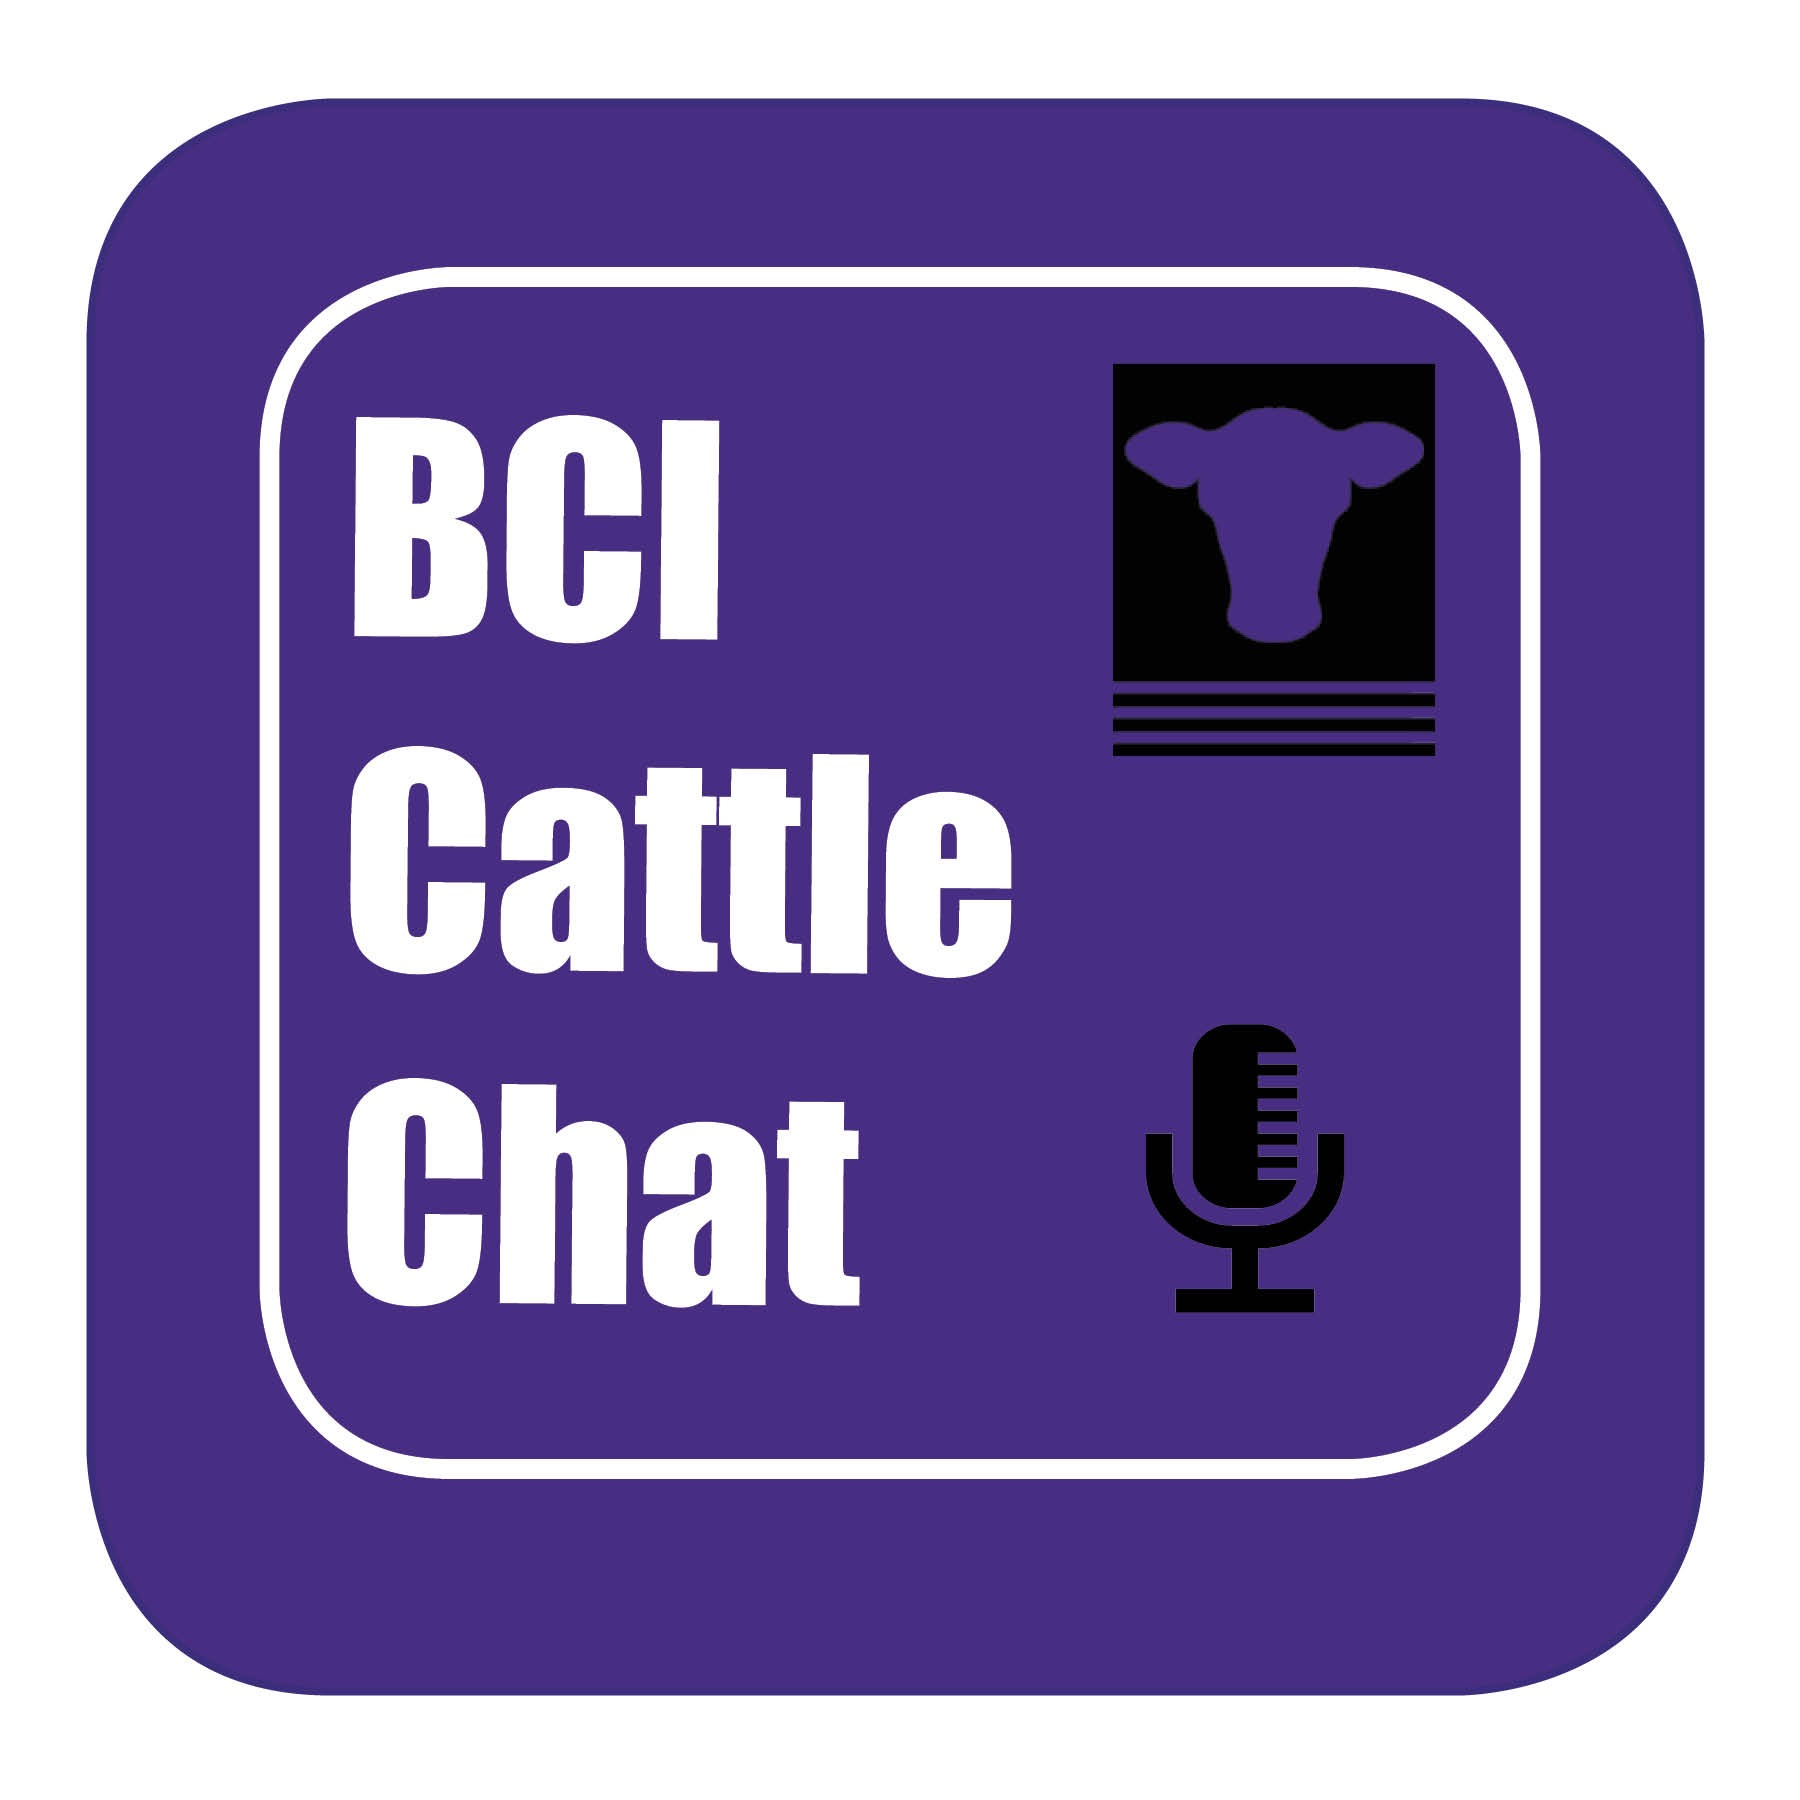 BCI Cattle Chat - Episode 14